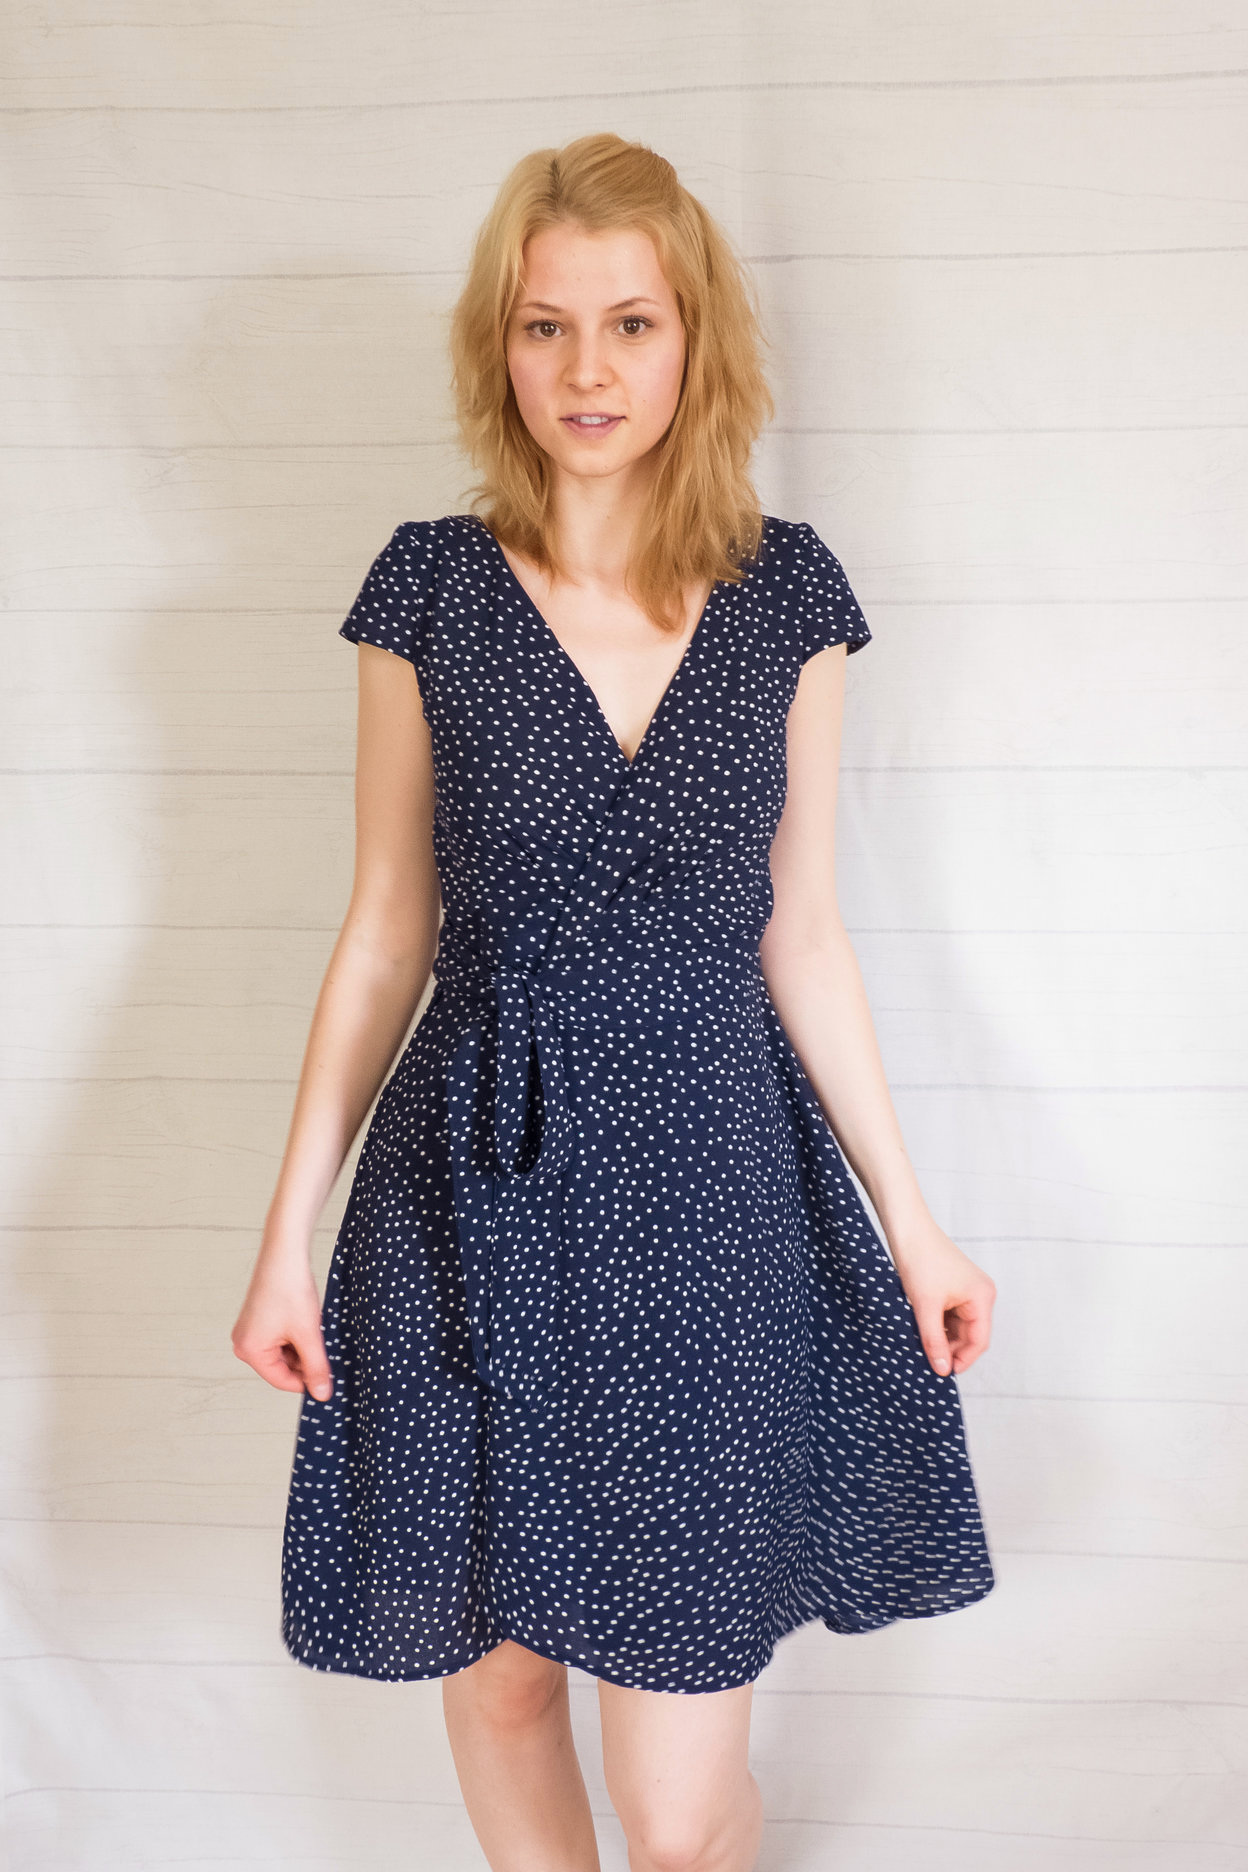 Dahlia Dress/Skirt from Glasshouse Patterns